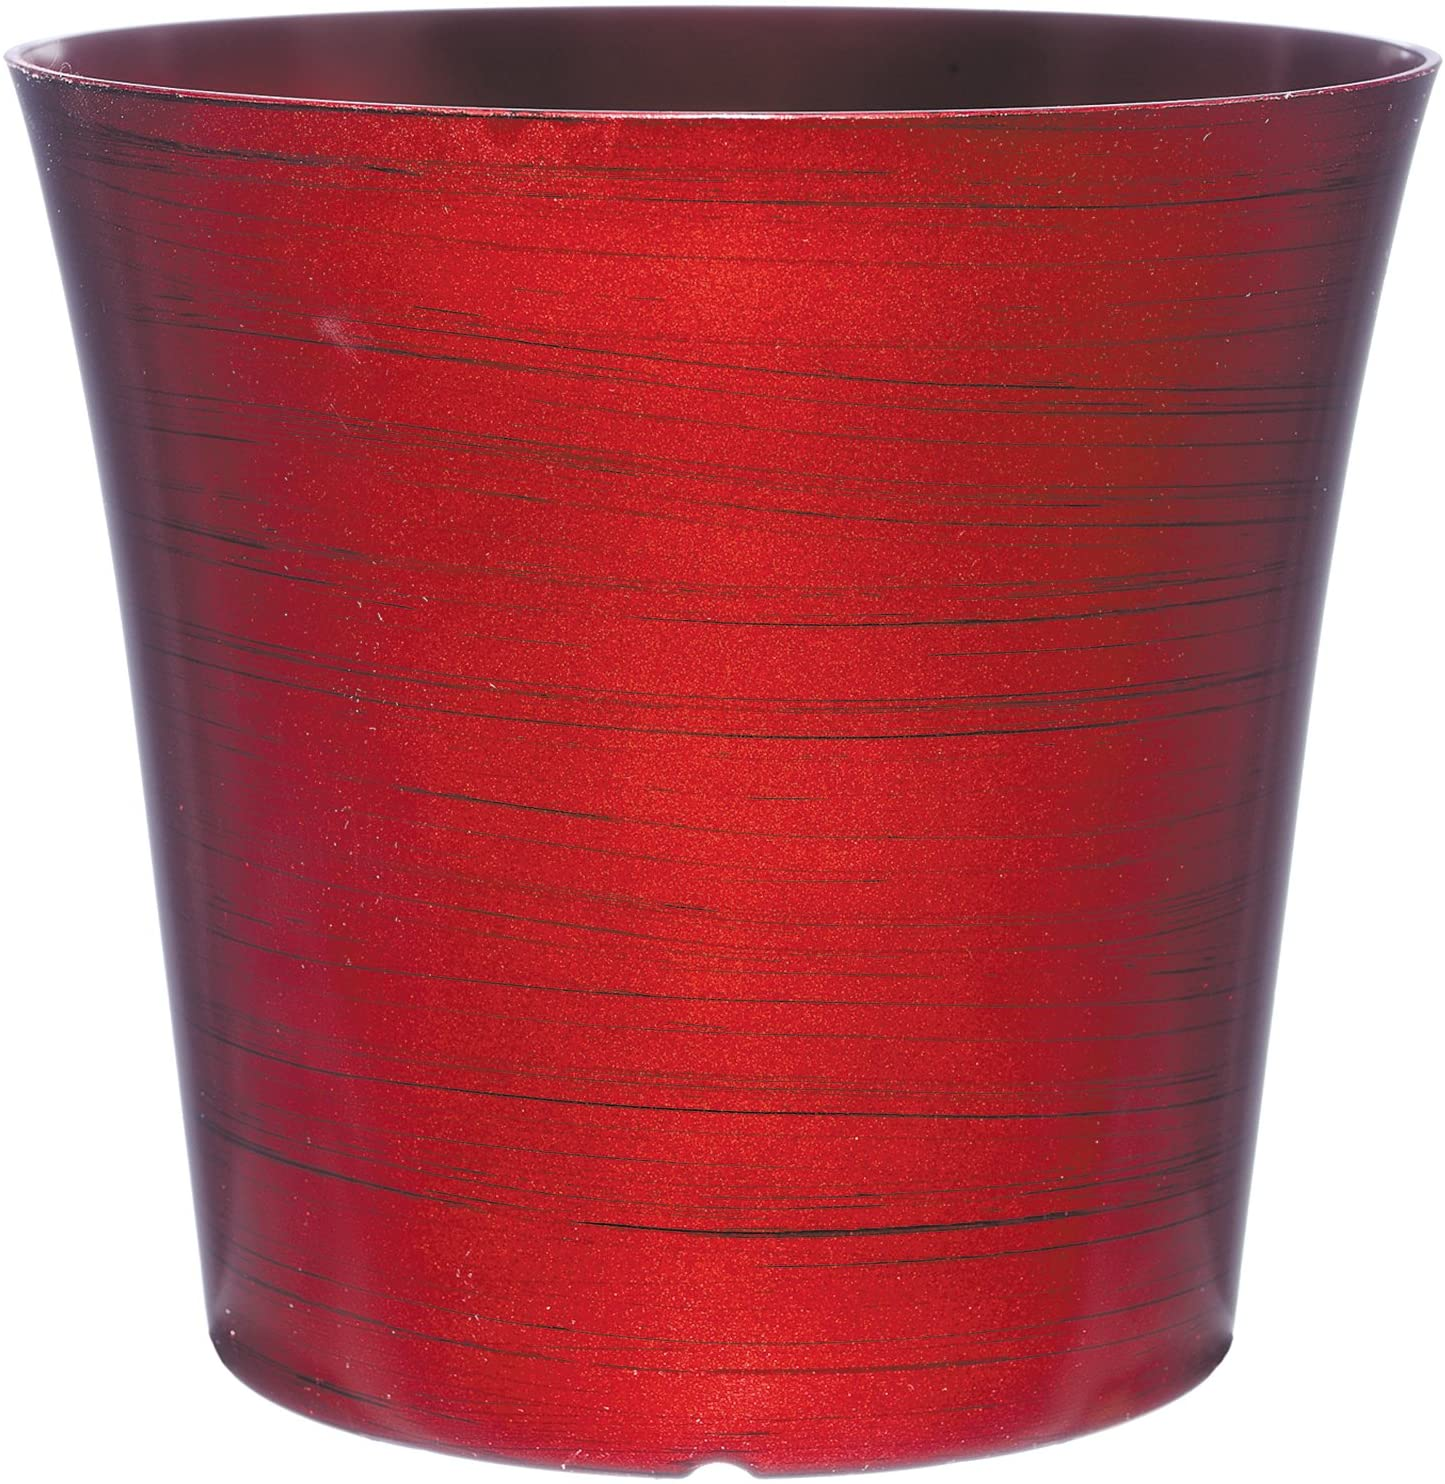 "Classic Home and Garden 1255-098 Bella 10"" Planter, Ruby Slipper"